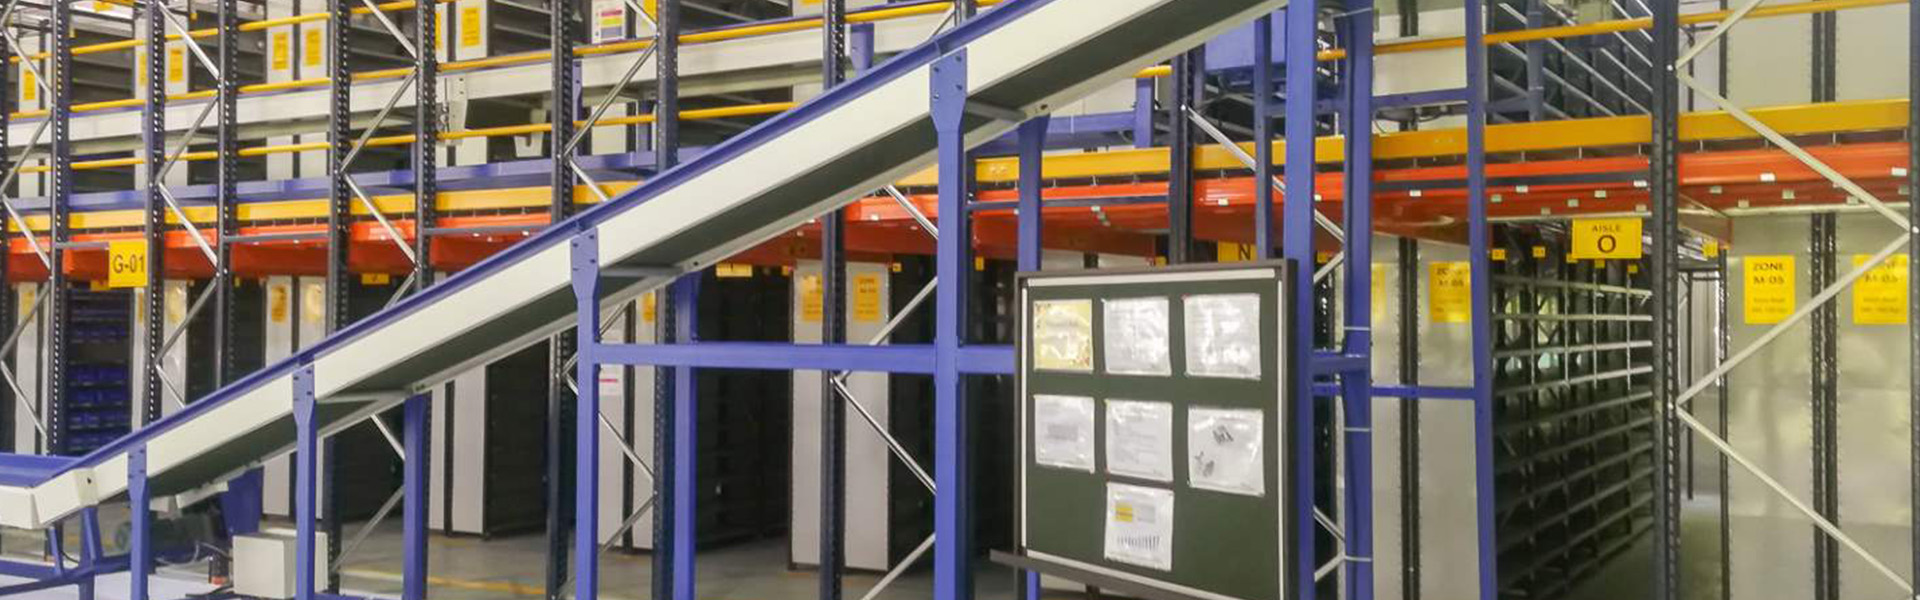 Smart warehouse equipped with belt conveyor